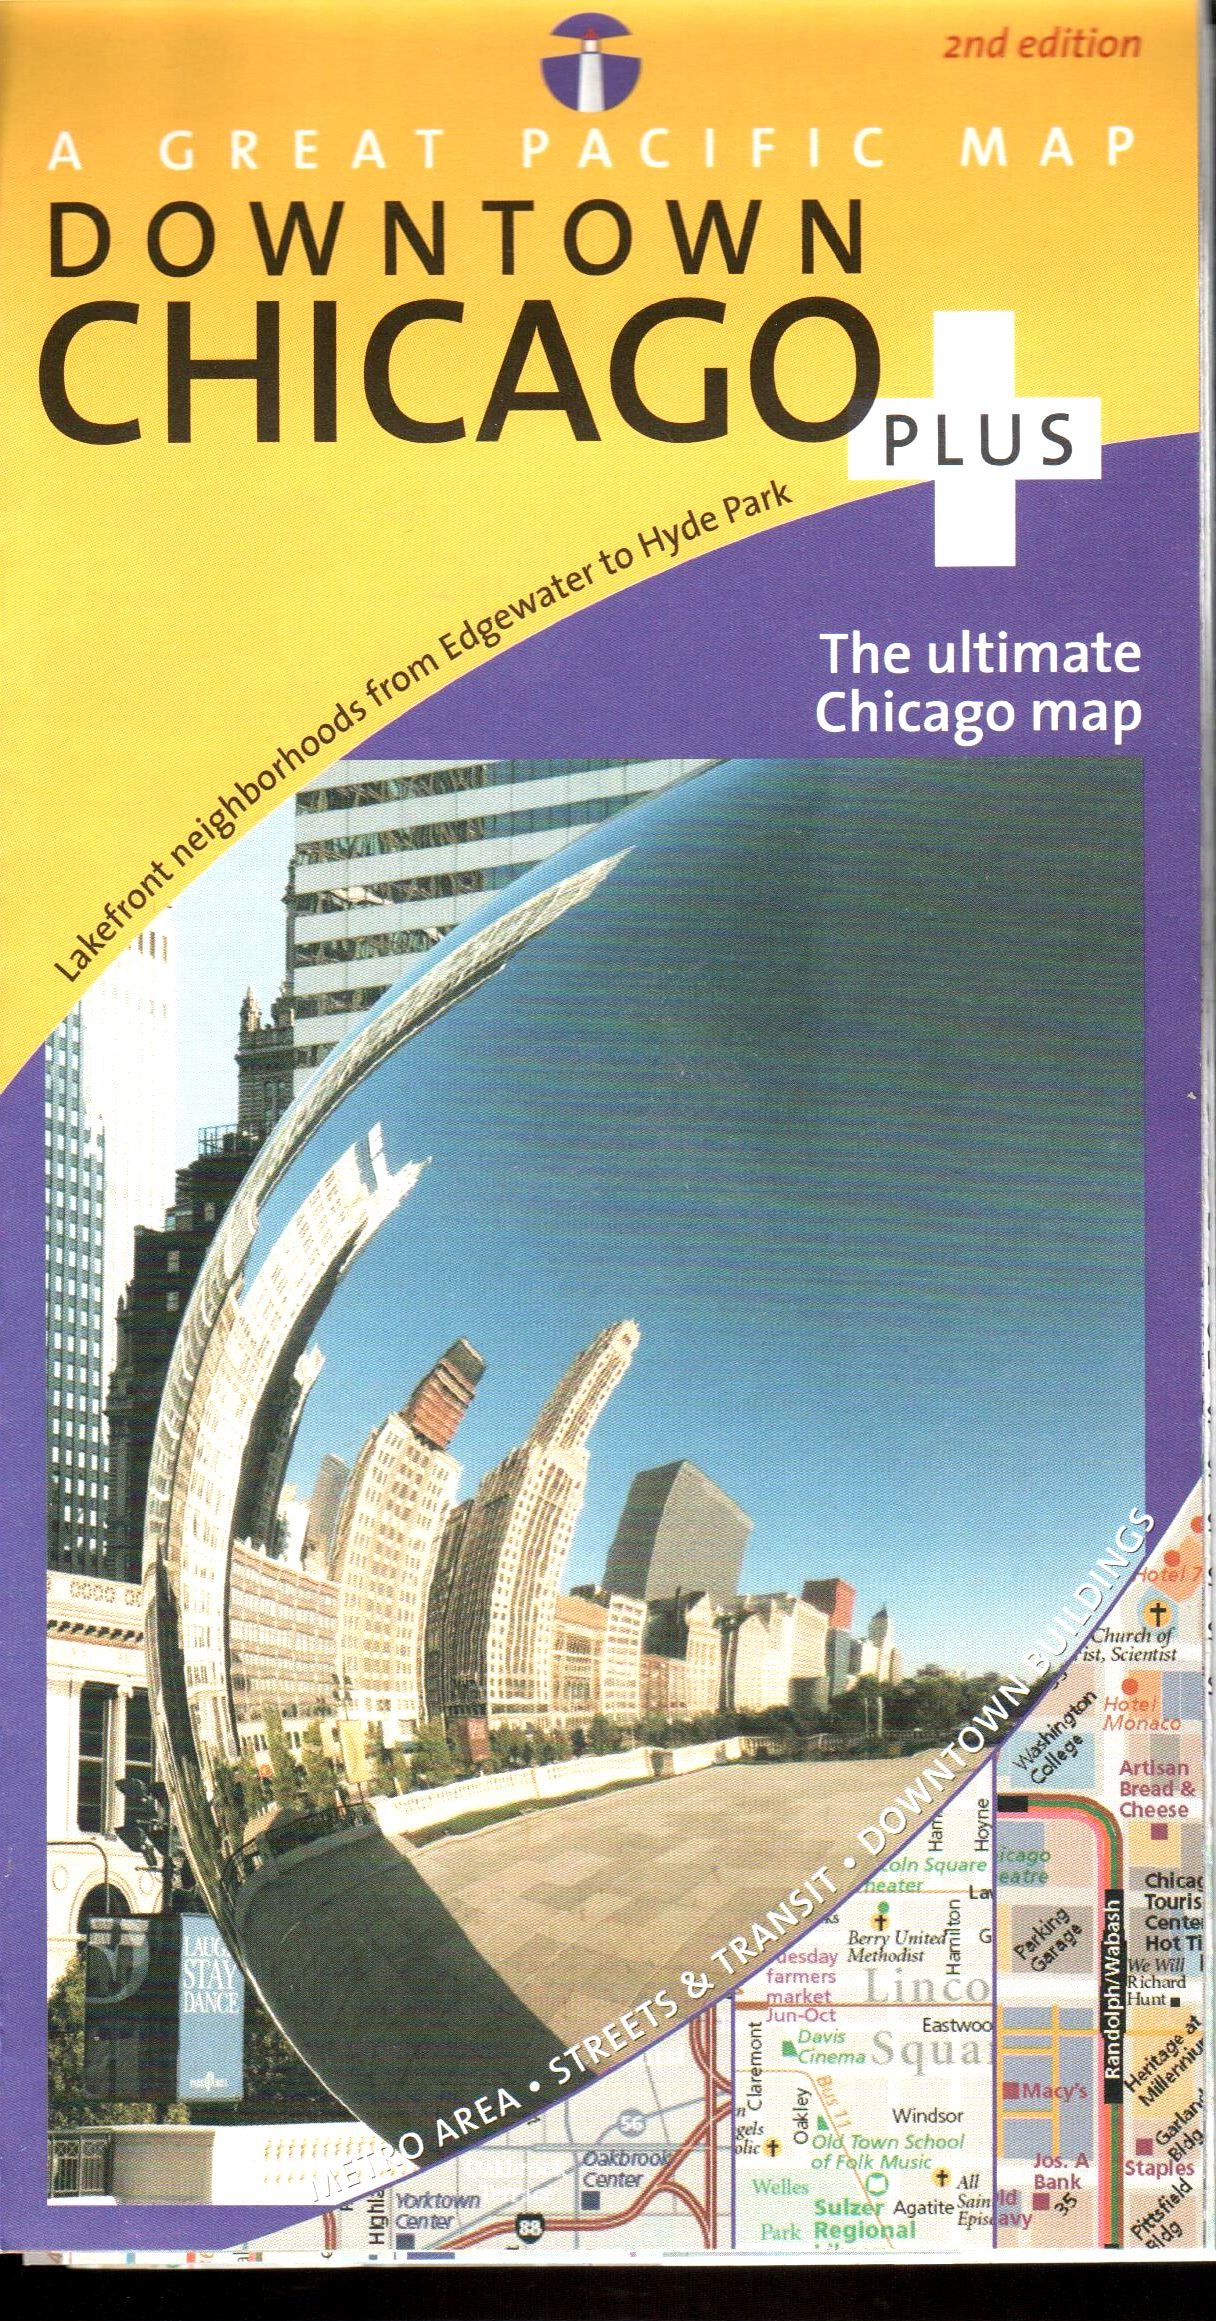 Chicago Map (Chicago Downtown Plus Road, Recreation ... on downtown chicago home, illinois map with hotels, baltimore inner harbor map with hotels, lake michigan map with hotels, san francisco map with hotels, o'hare airport map with hotels,